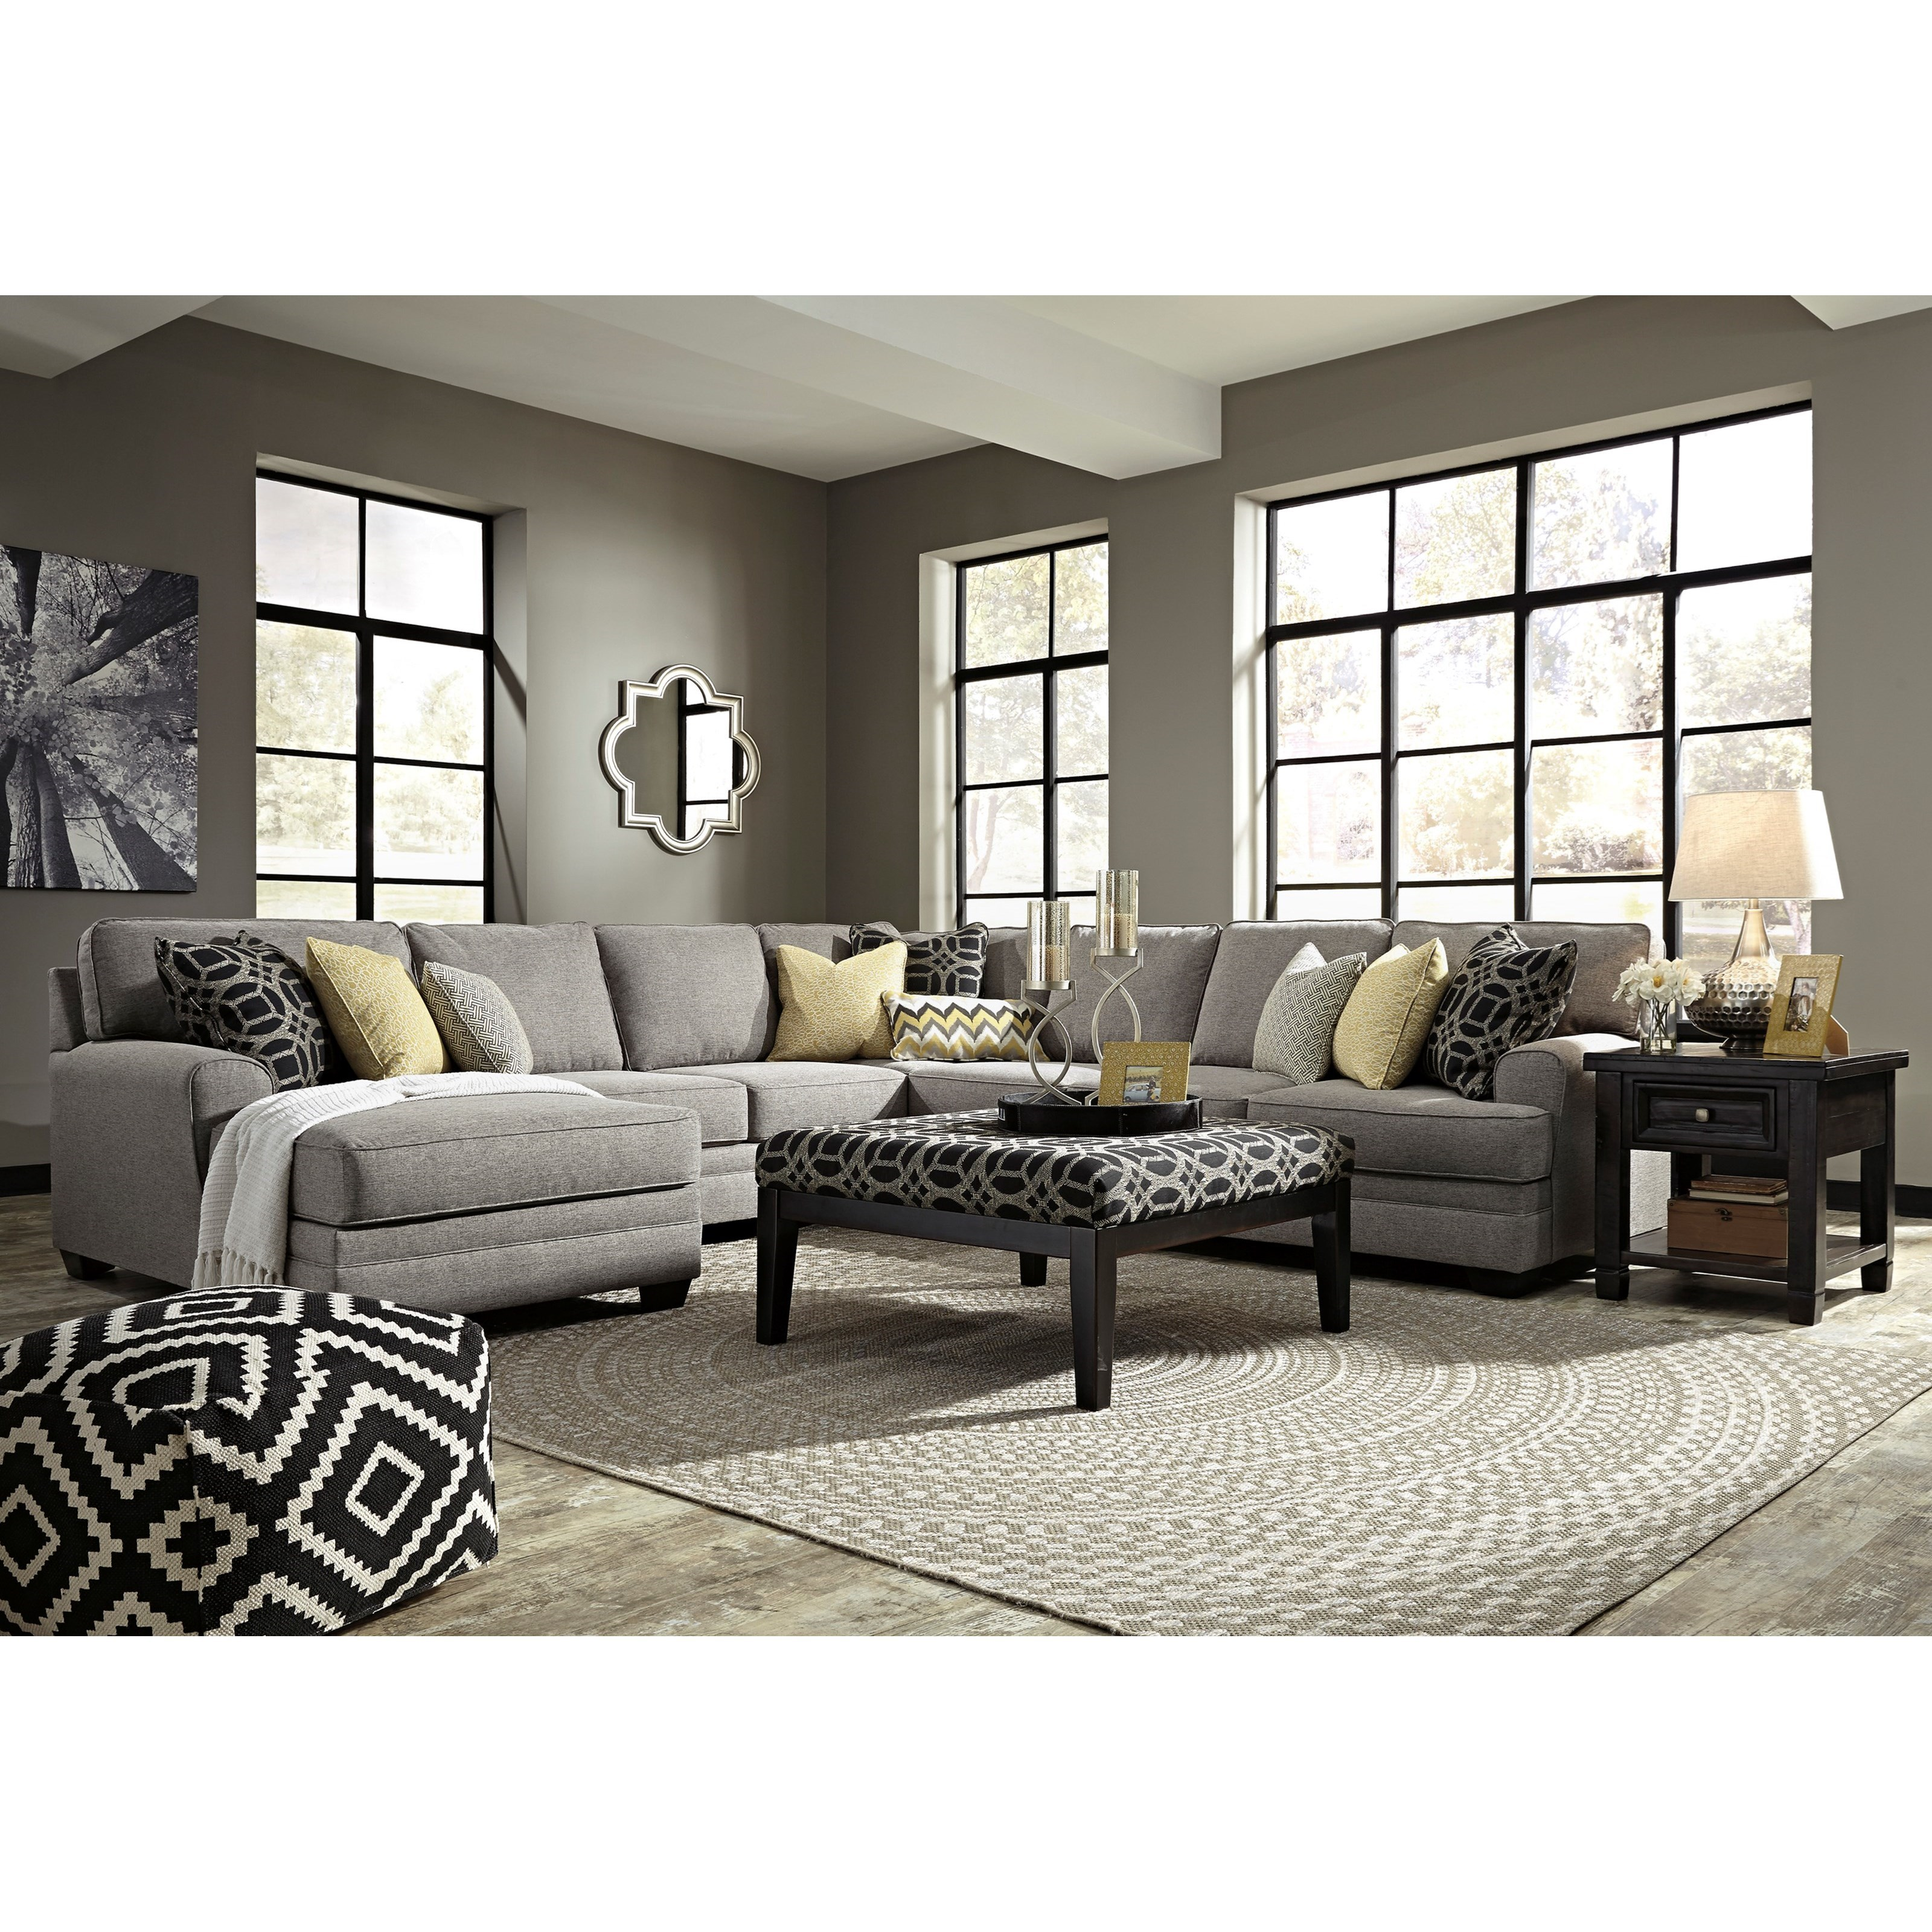 Benchcraft Cresson Stationary Living Room Group Dunk